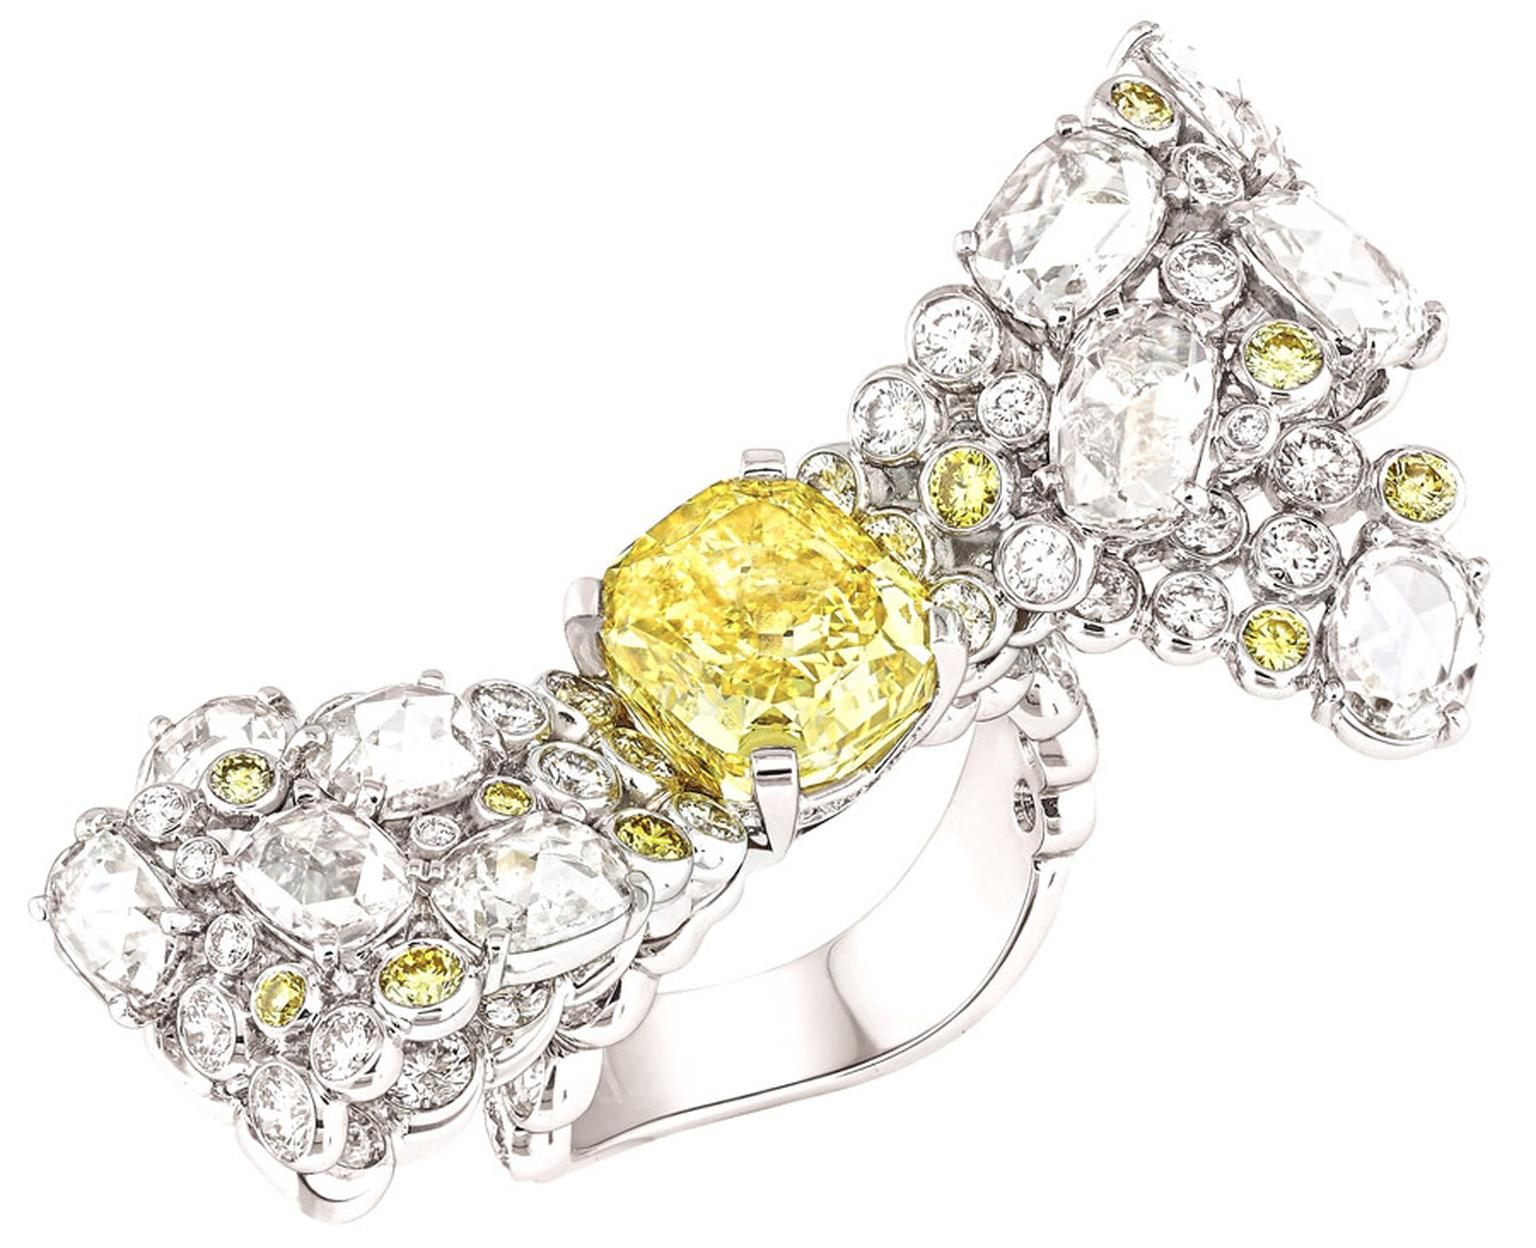 Chanel-Bague-Ruban-Mademoiselle-Dia-Jaune-GM.jpg